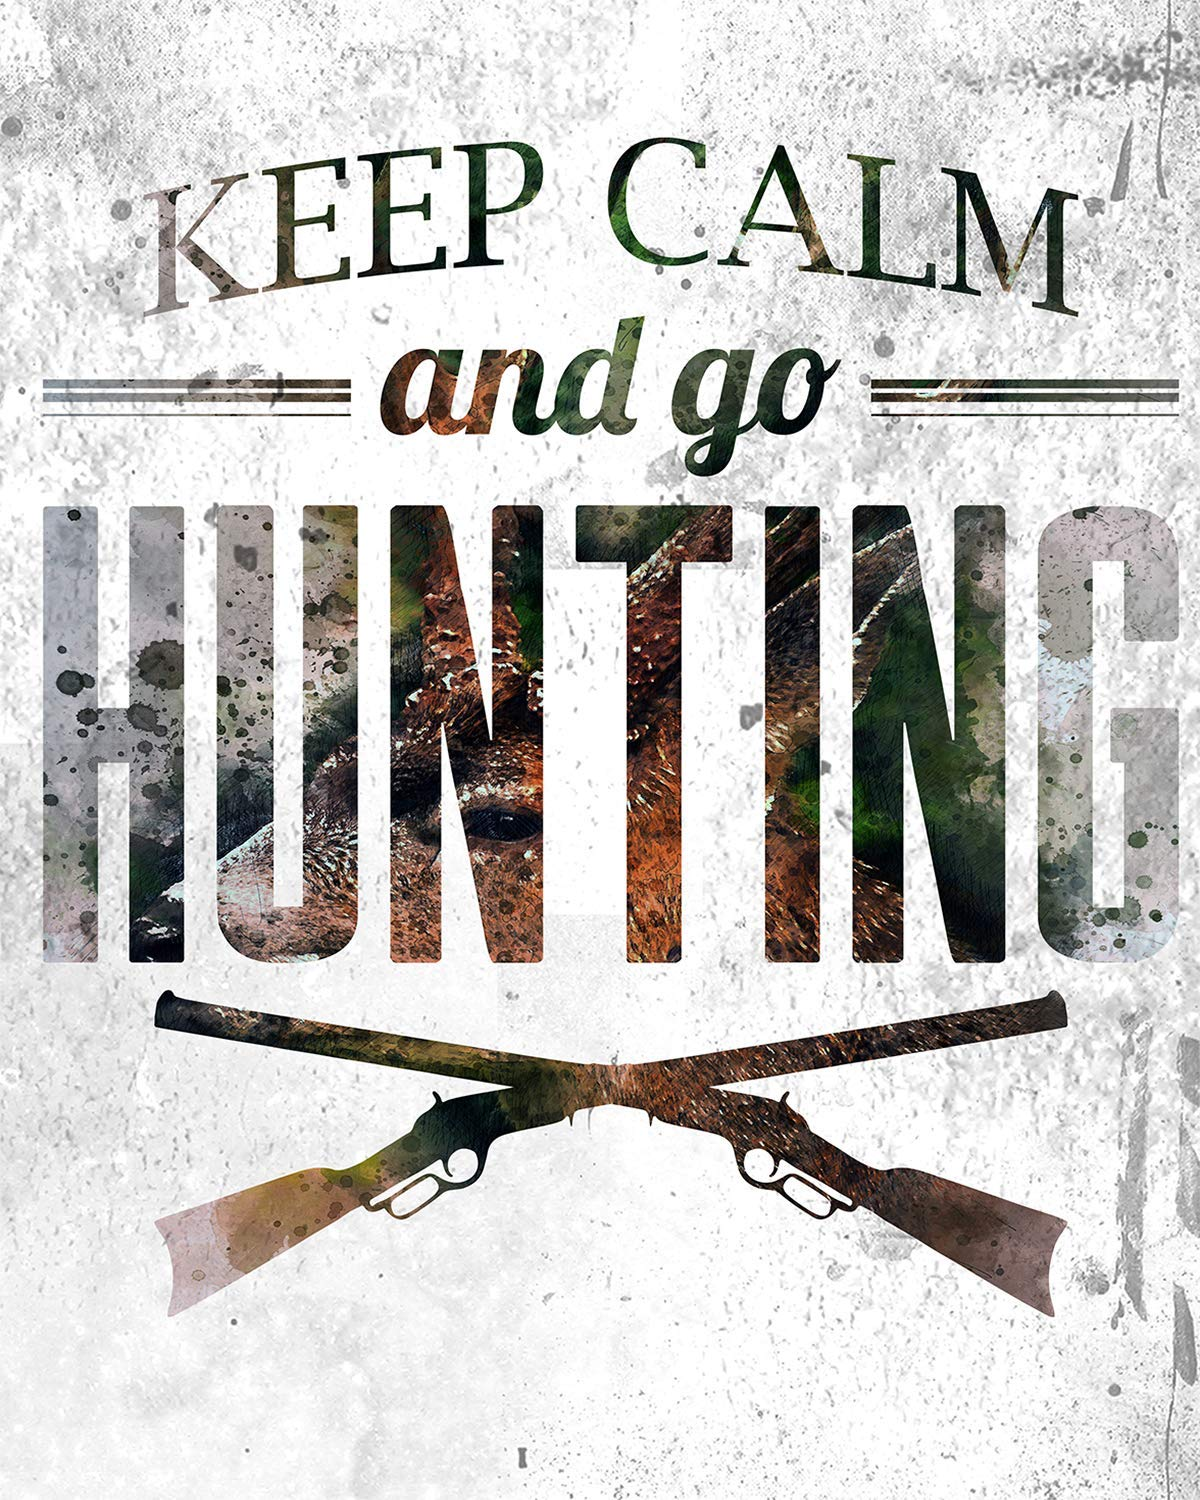 Hunting Rifle after Brand Art Coloured Pencil Effect Canvas Picture Wall Deco